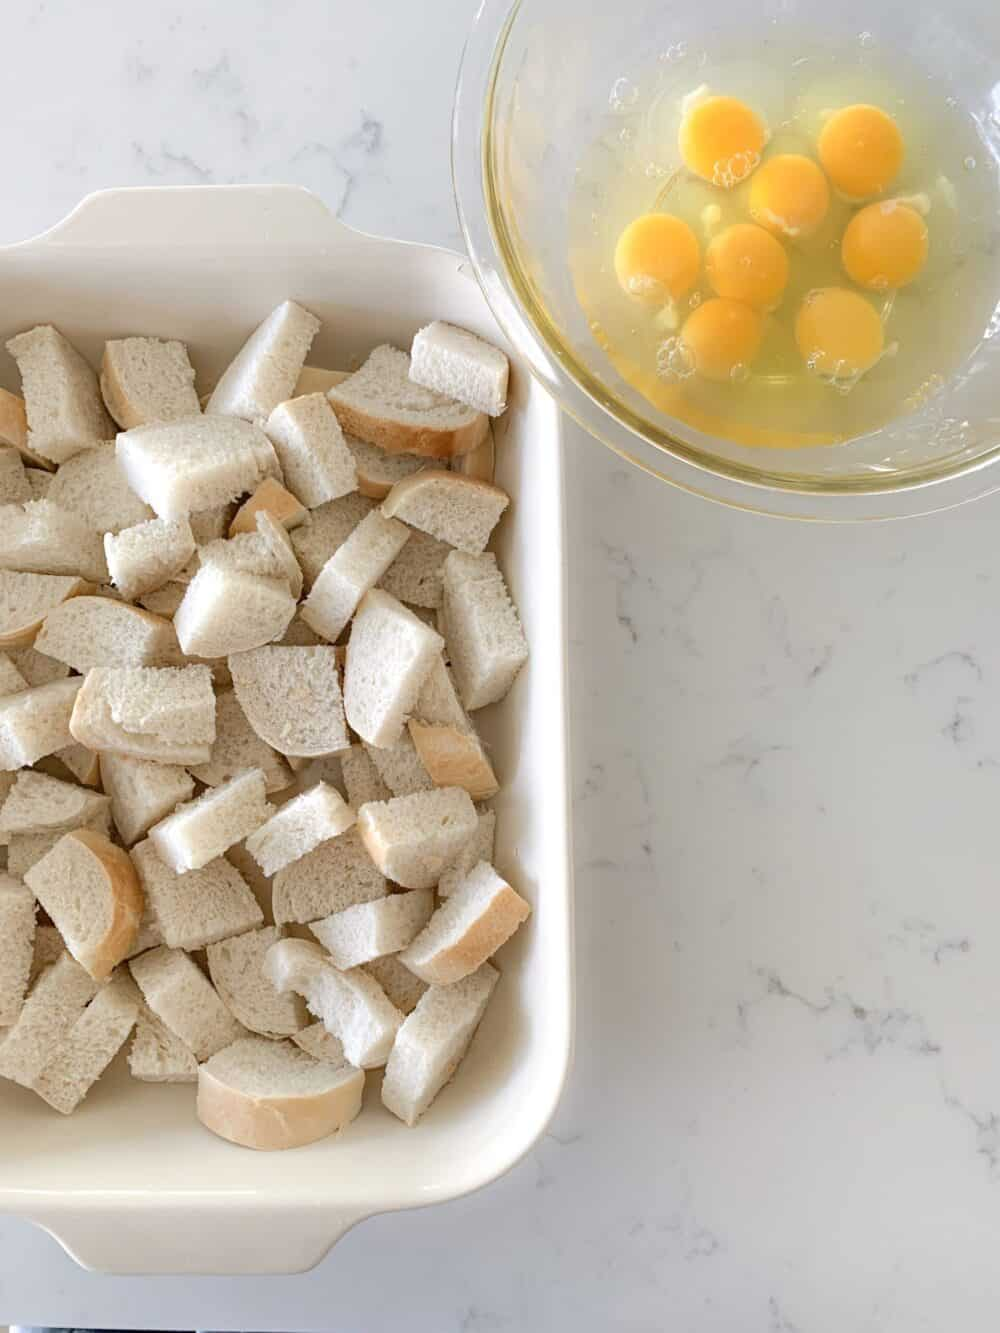 cubed bread in casserole dish and eggs in bowl